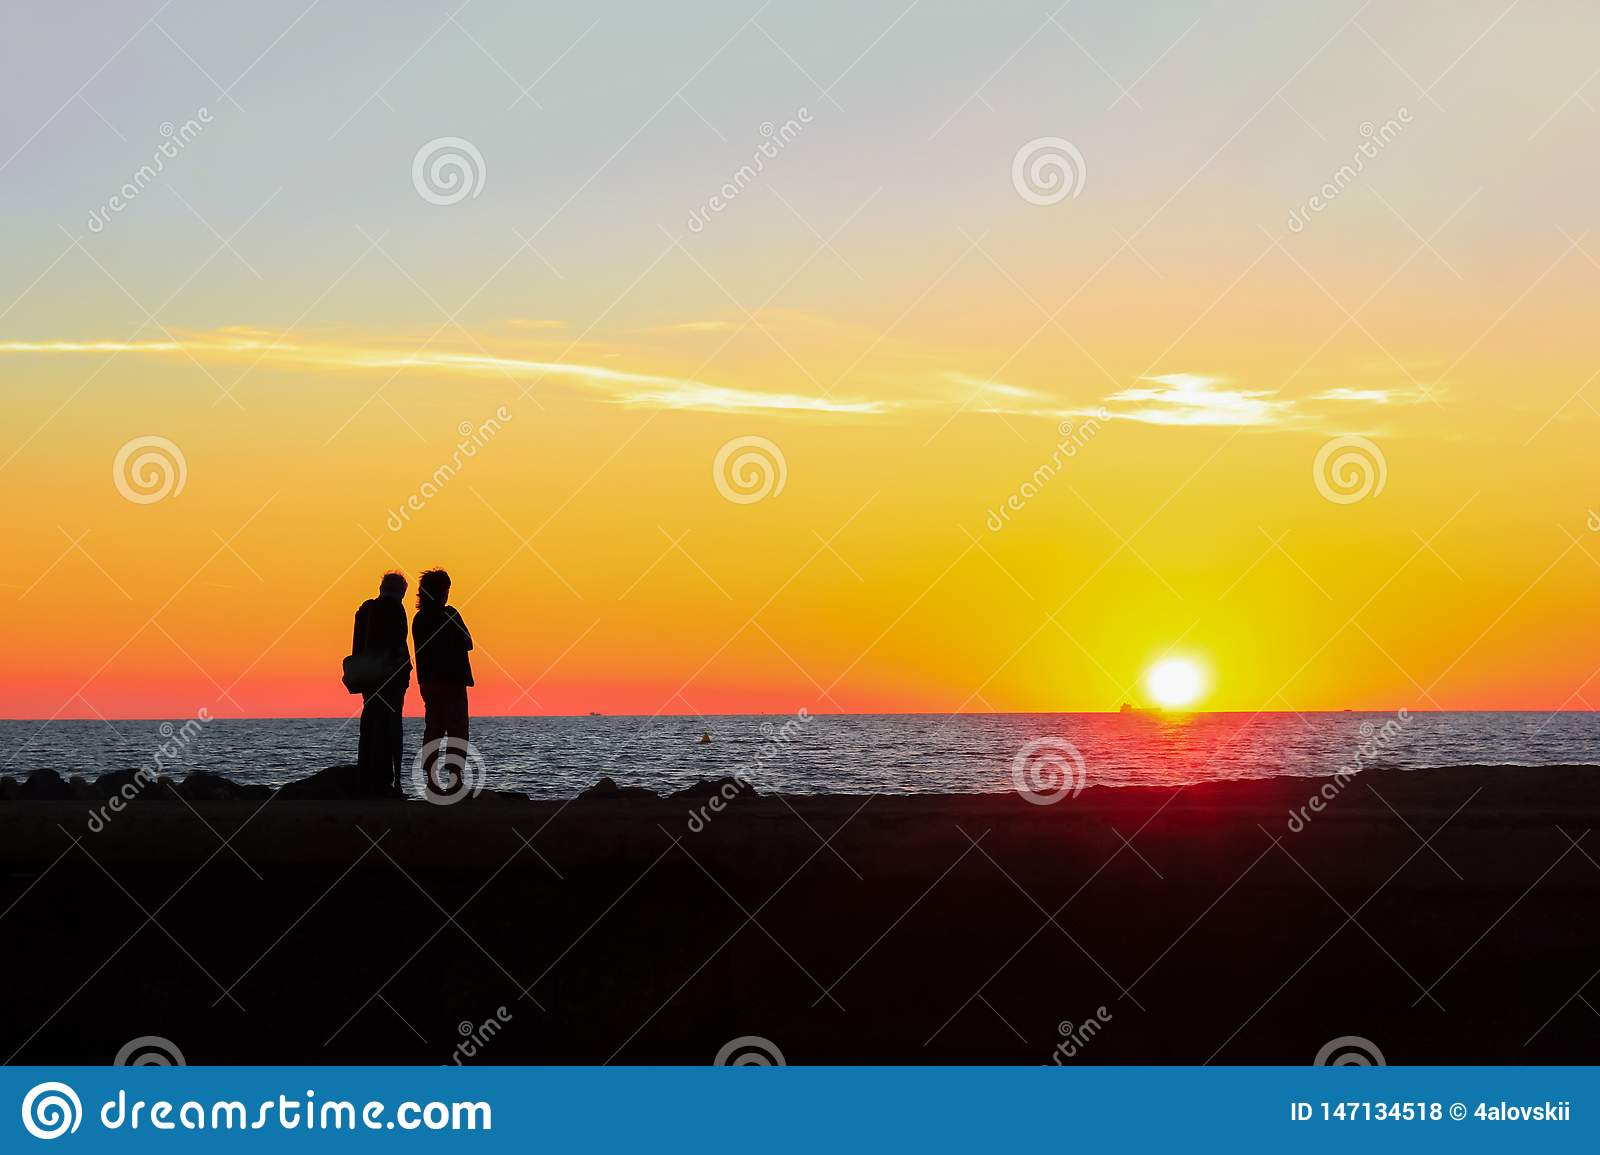 Man and woman admire the colorful sunset on the beach